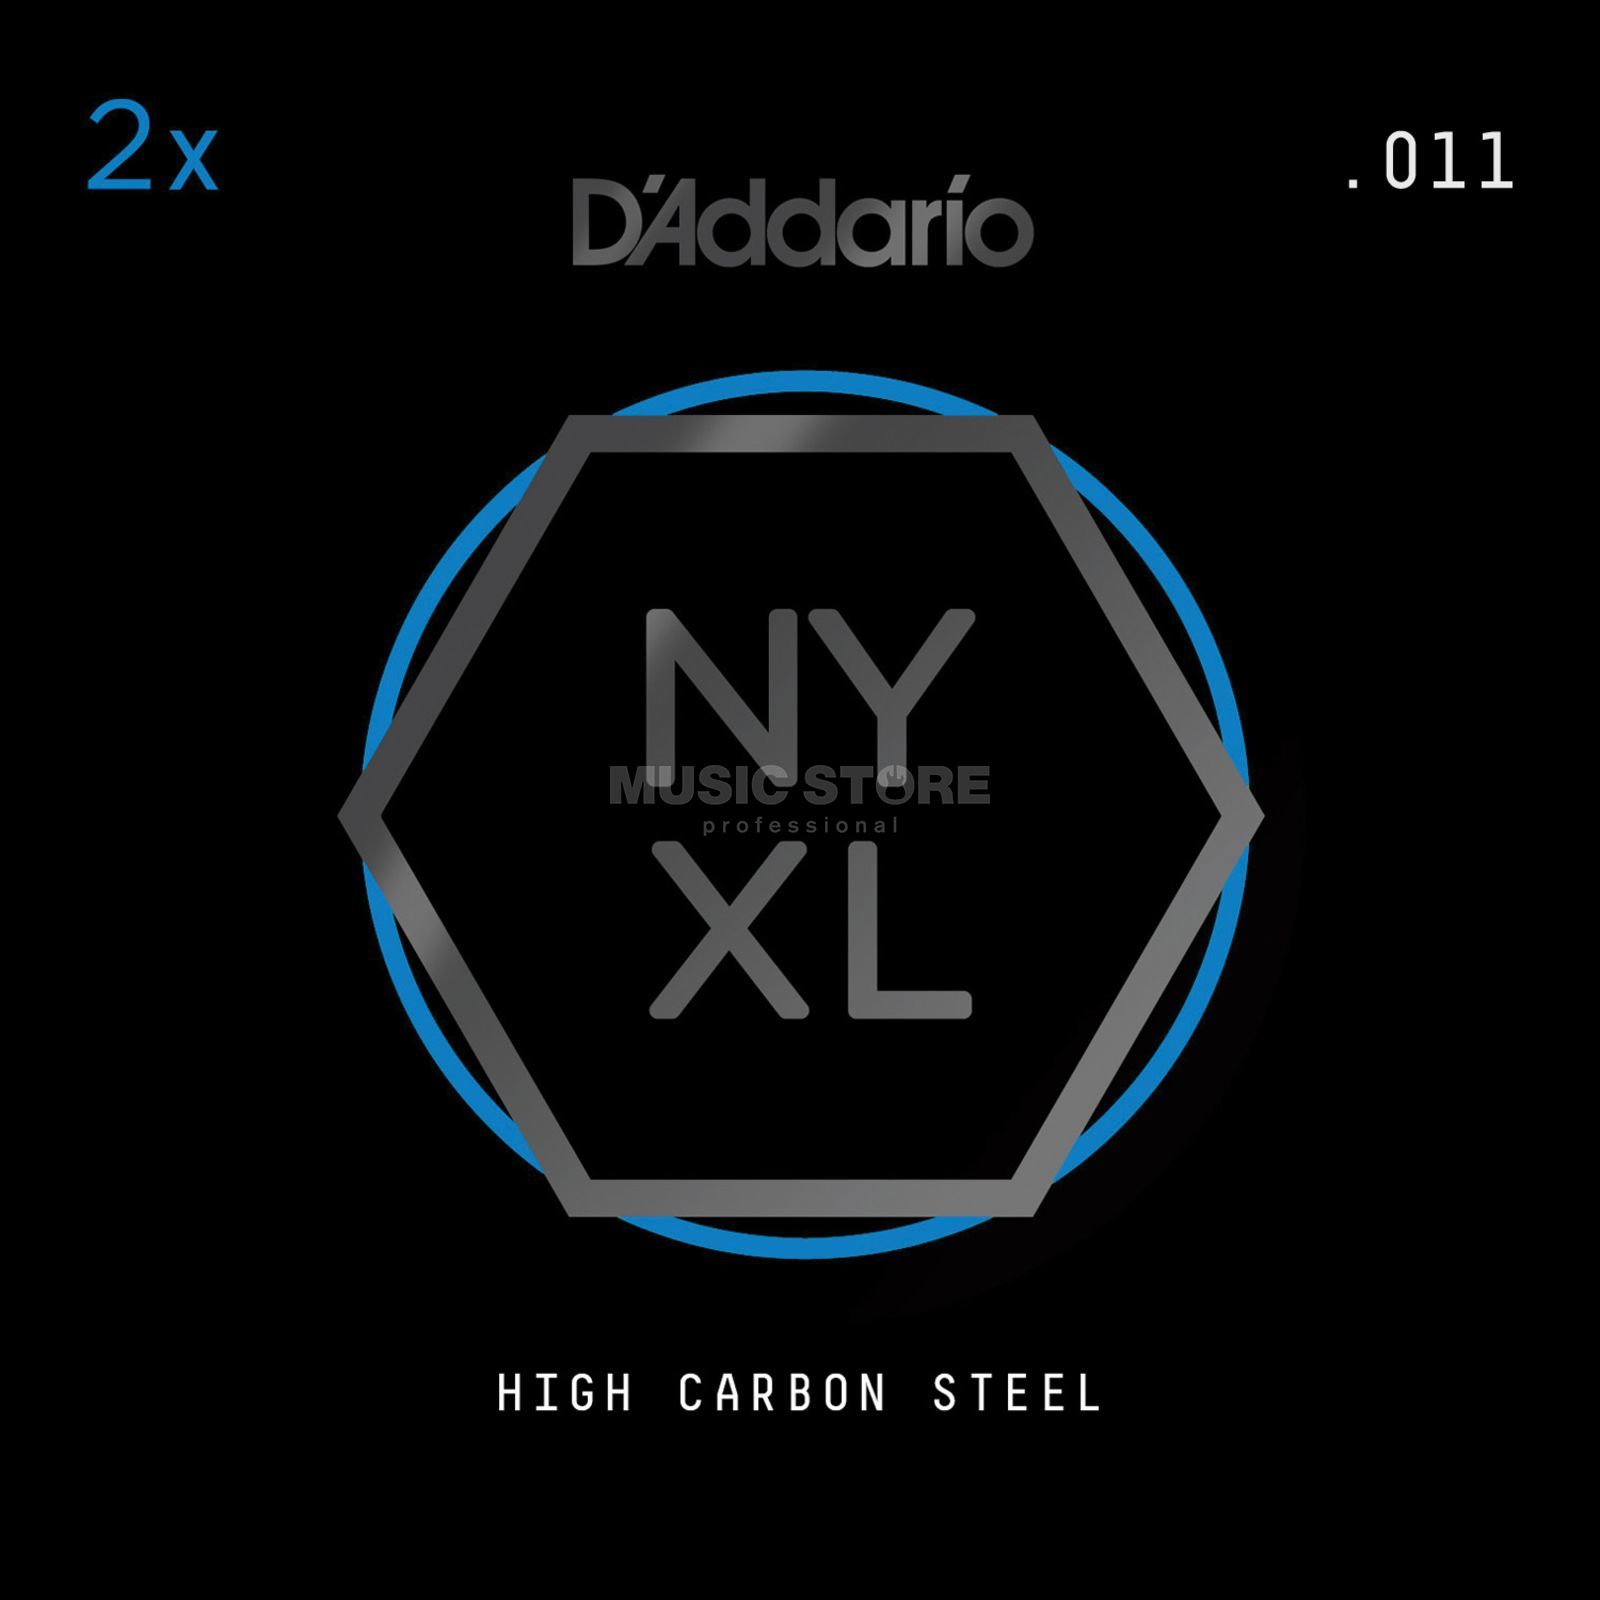 D'Addario NYPL011 Plain Single String 2-Pack - High Carbon Steel Imagen del producto